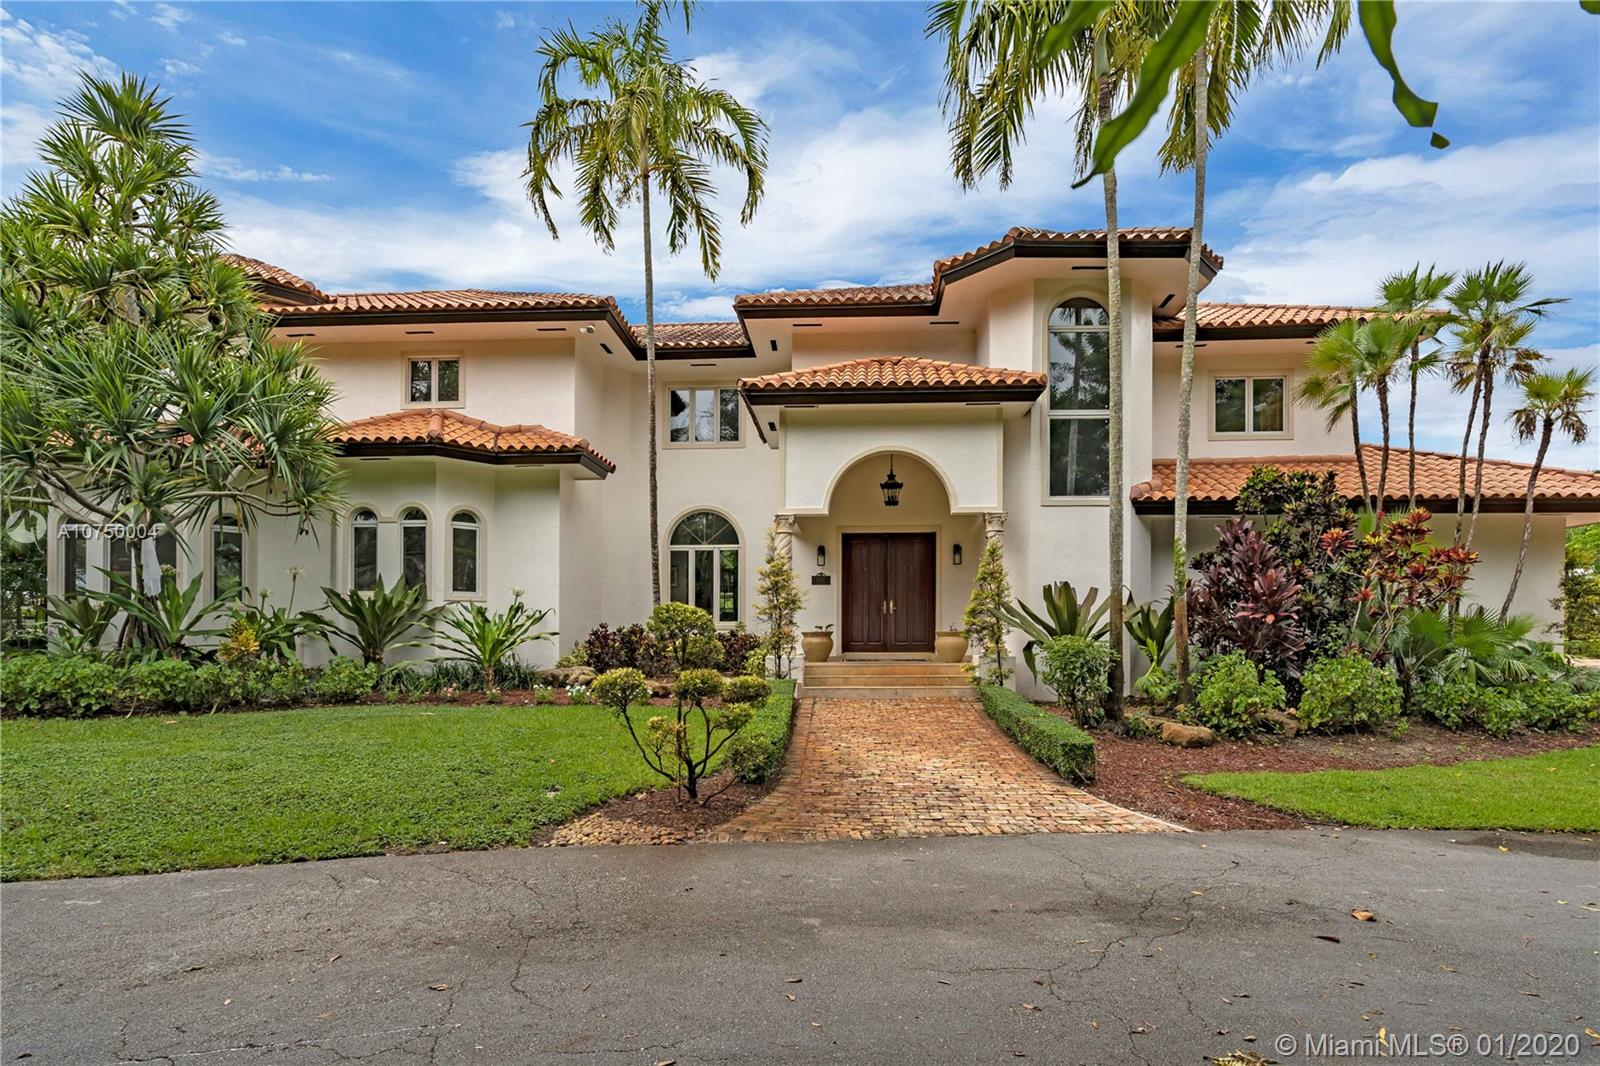 9425 SW 114, Kendall, Florida